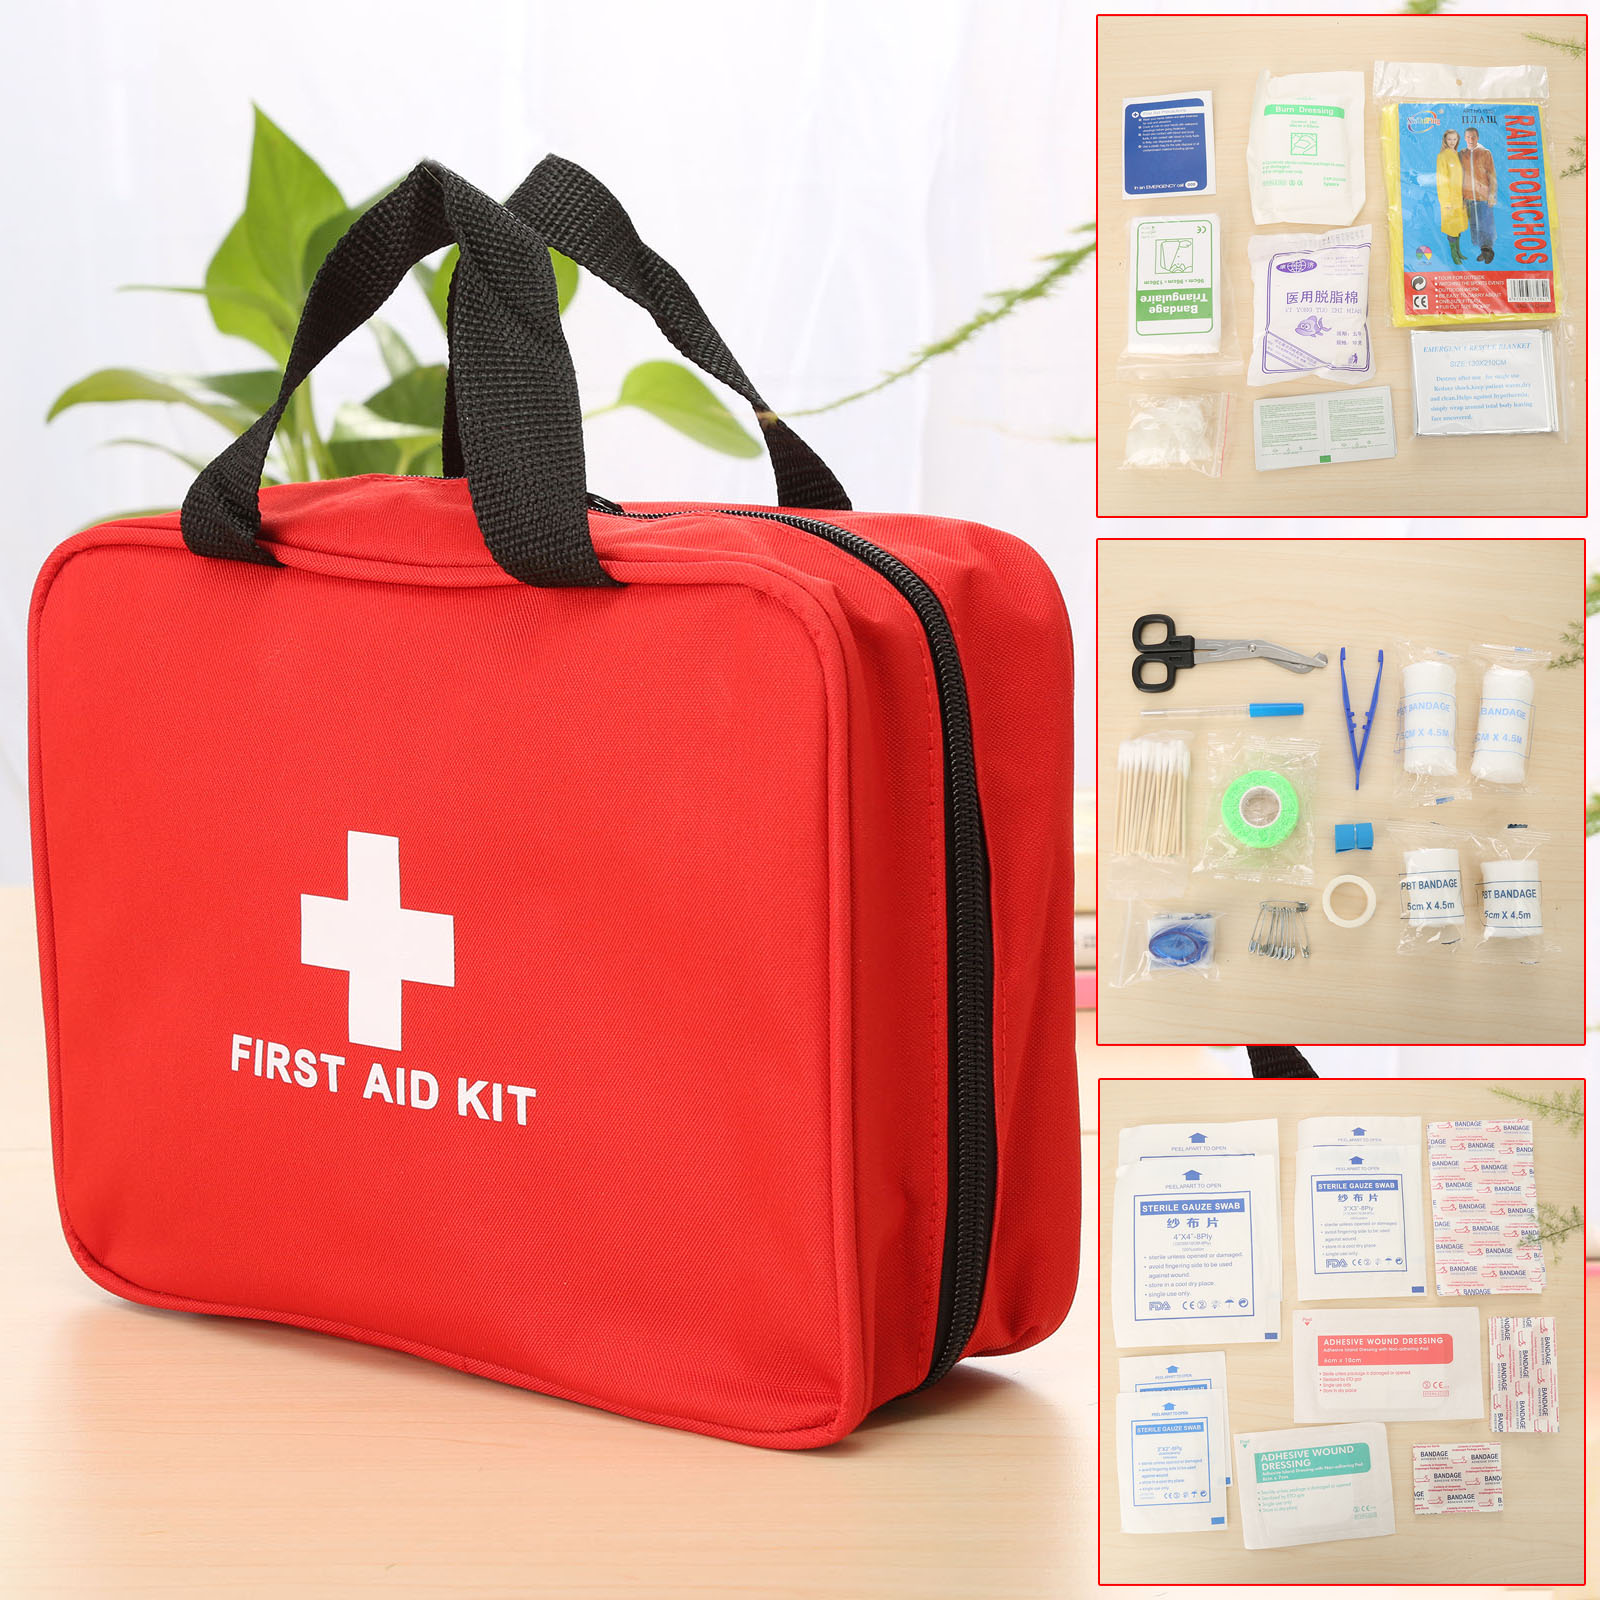 22 Kinds(94pcs) Portable First Aid Kit Military First Aid Kits Pouch Outdoor Hiking Travel Home Car Emergency Treatment Pack Bag new fashion waterproof outdoor travel home portable first aid bag carry small medical emergency kit first aid contains 11 kinds